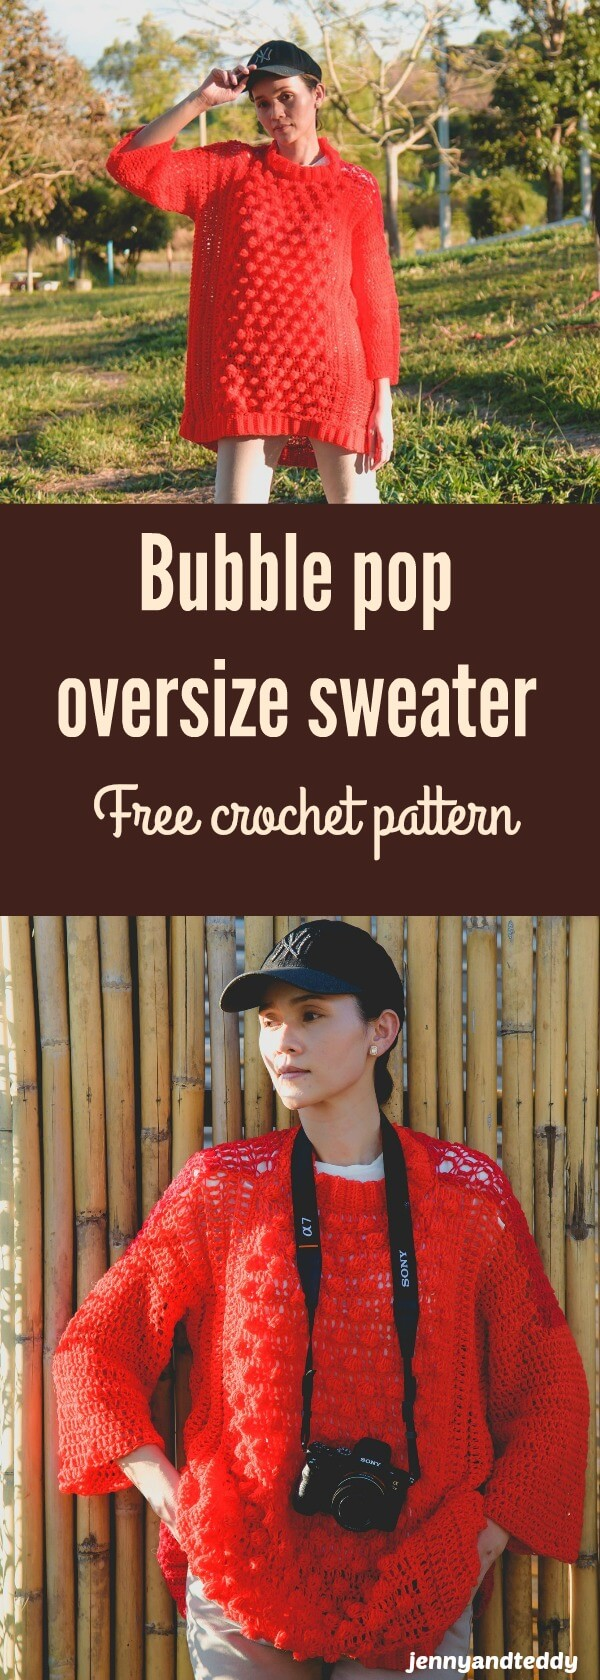 easy crochet oversized bobble sweater free pattern with video tutorial.